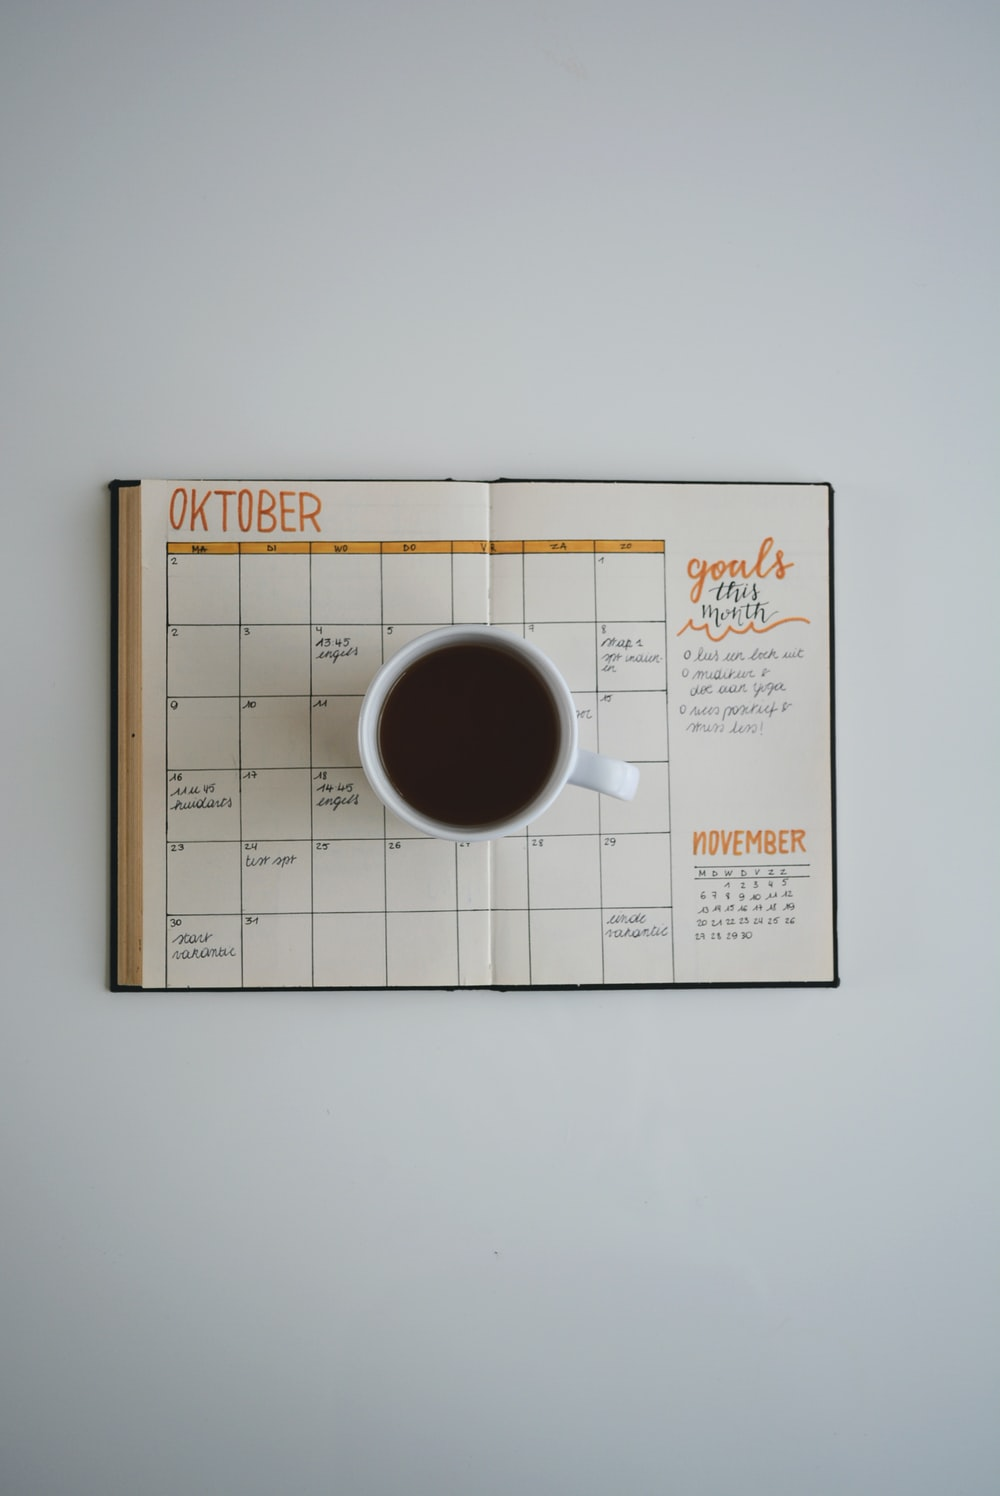 white coffee mug on calendar at october